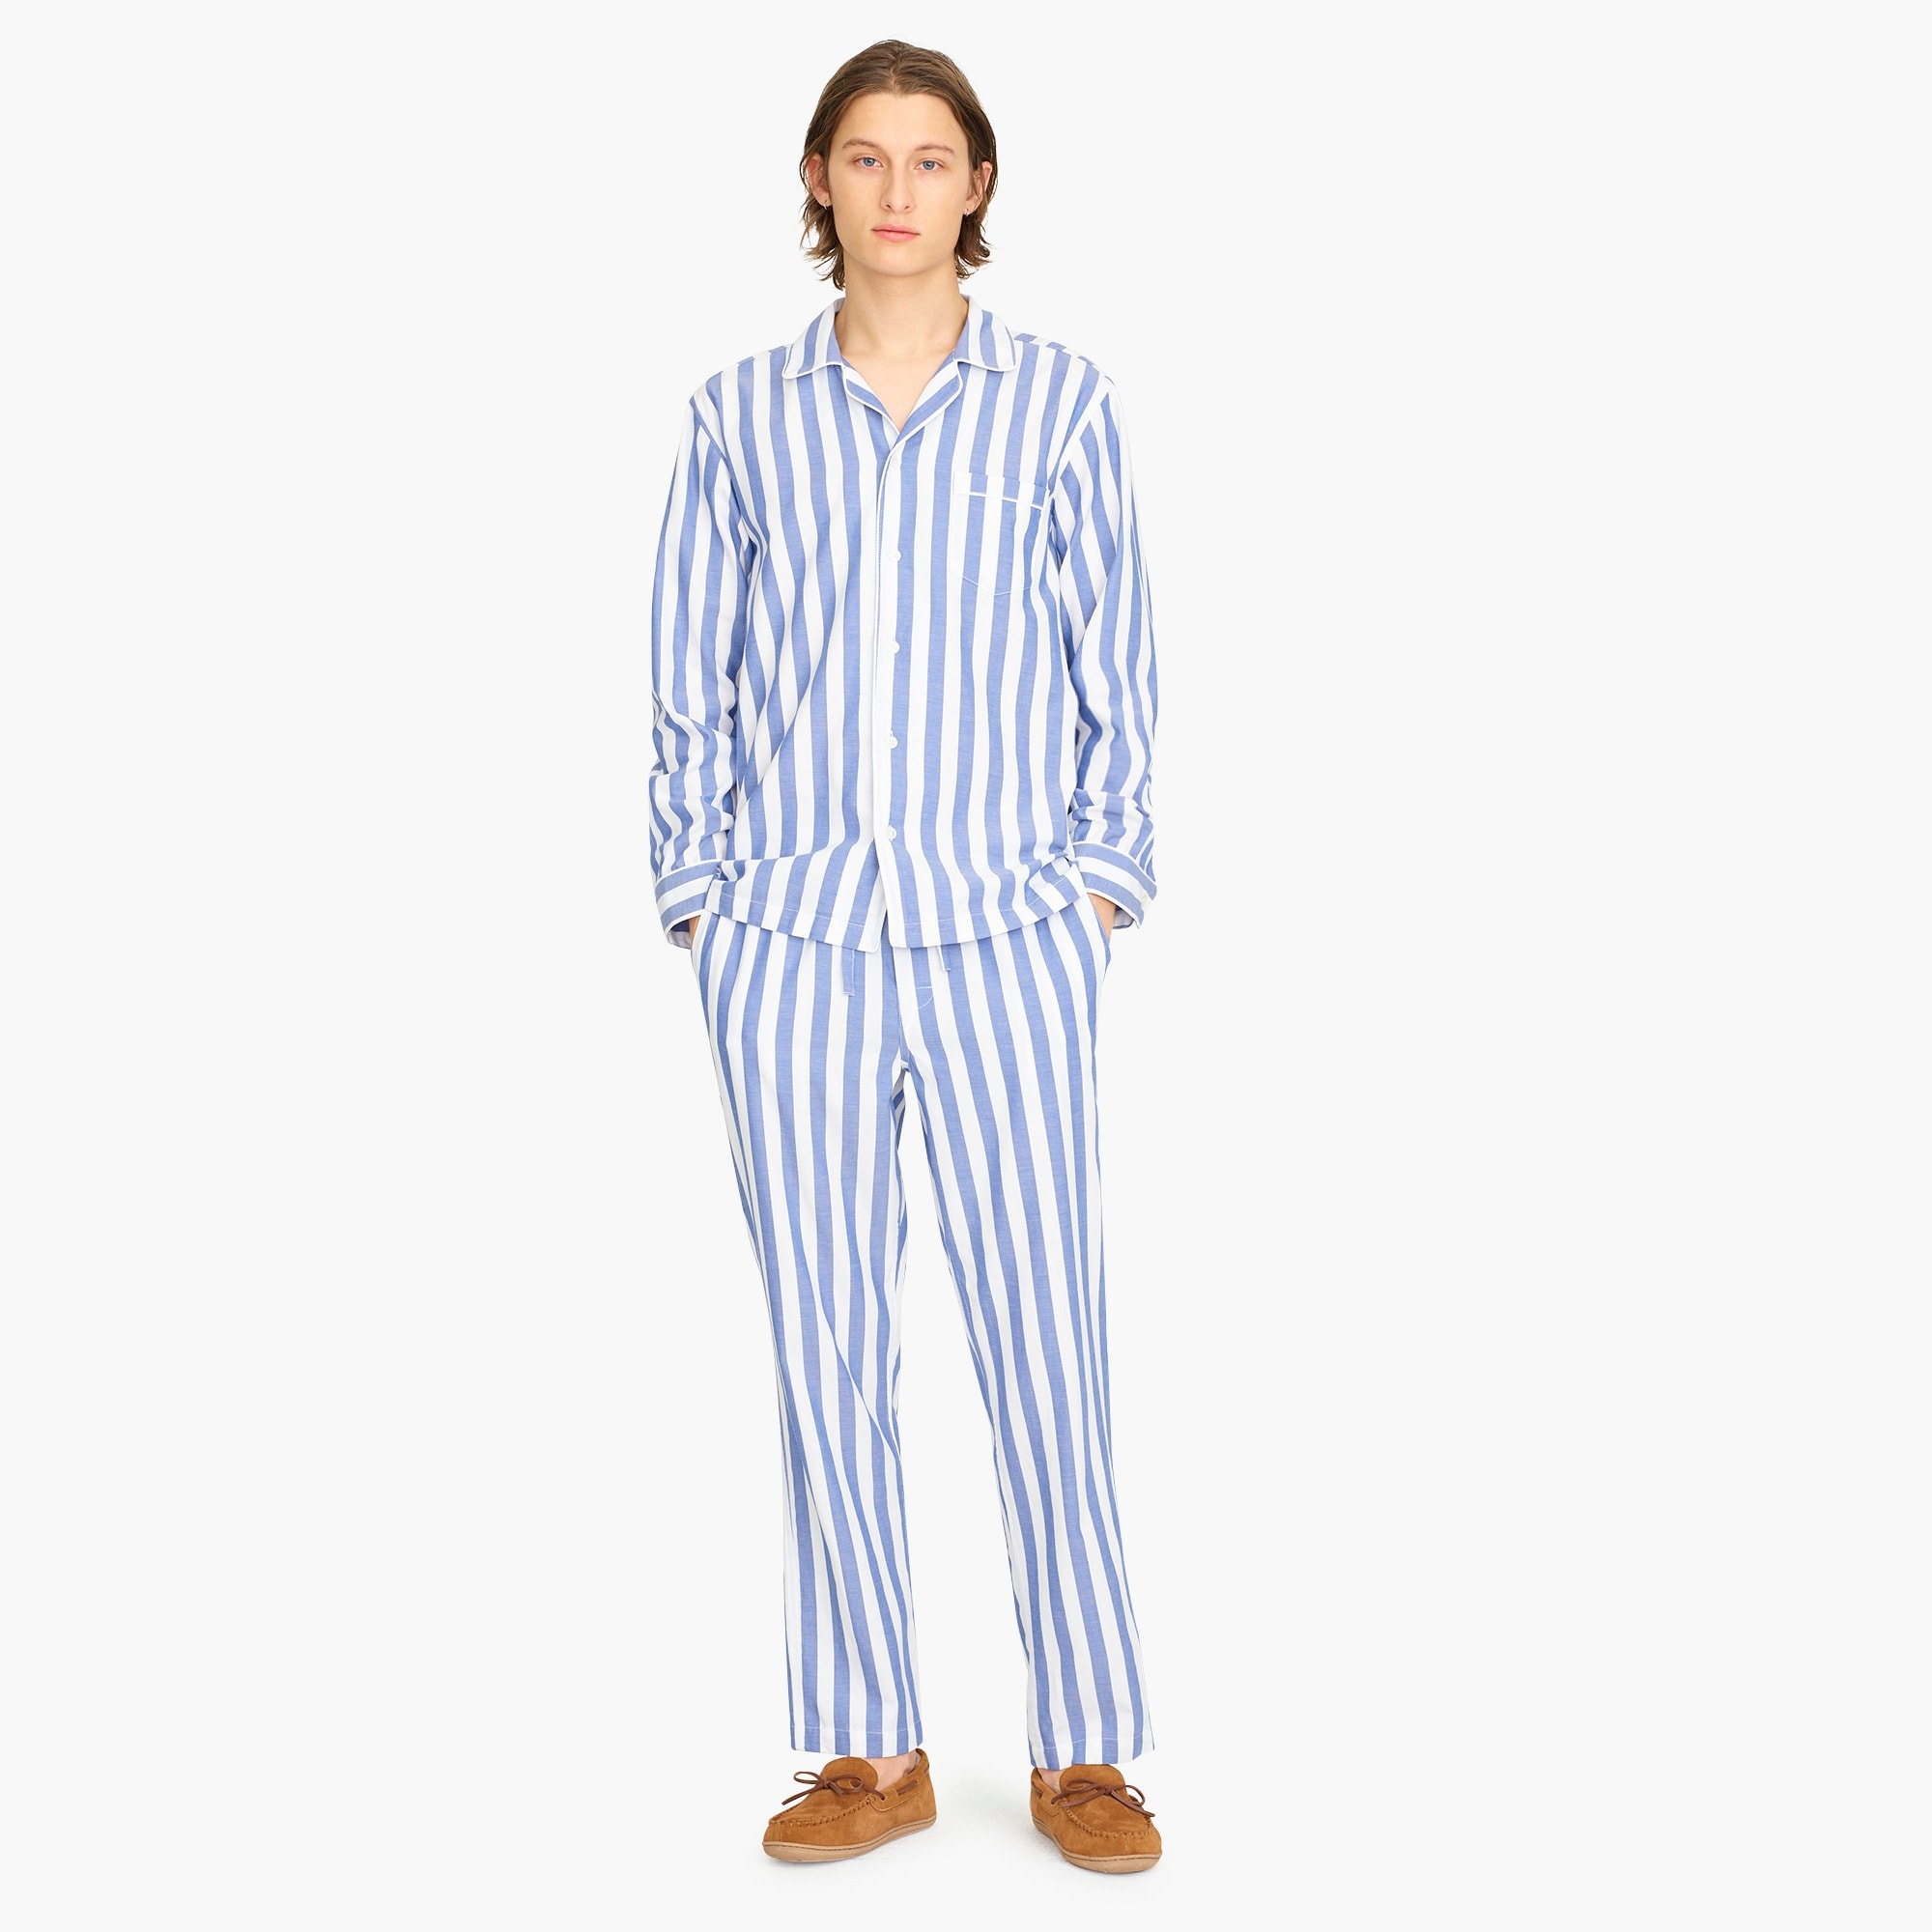 mens Pajama set in Wilson stripe